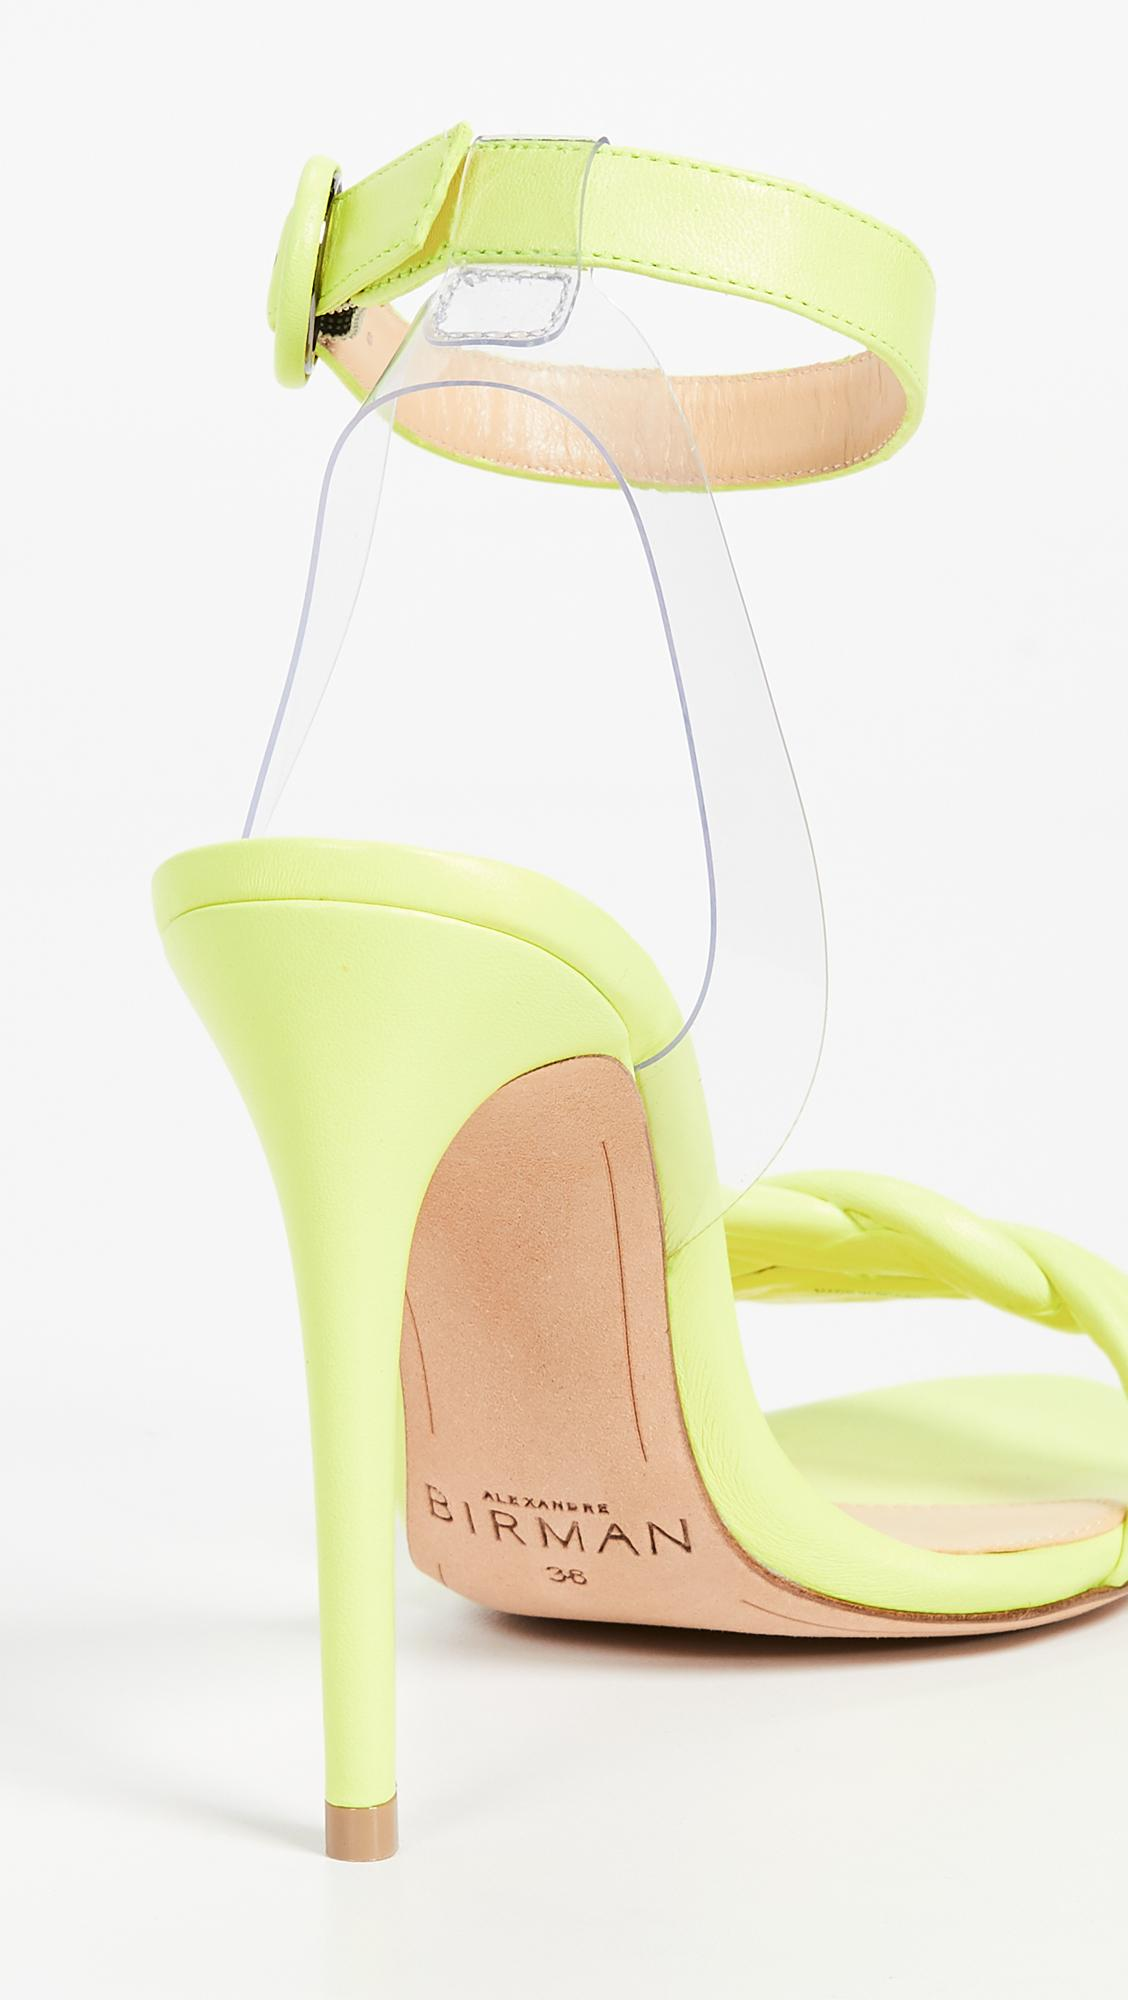 53c09960a Alexandre Birman - Yellow Vicky Vinyl 100mm Sandals - Lyst. View fullscreen